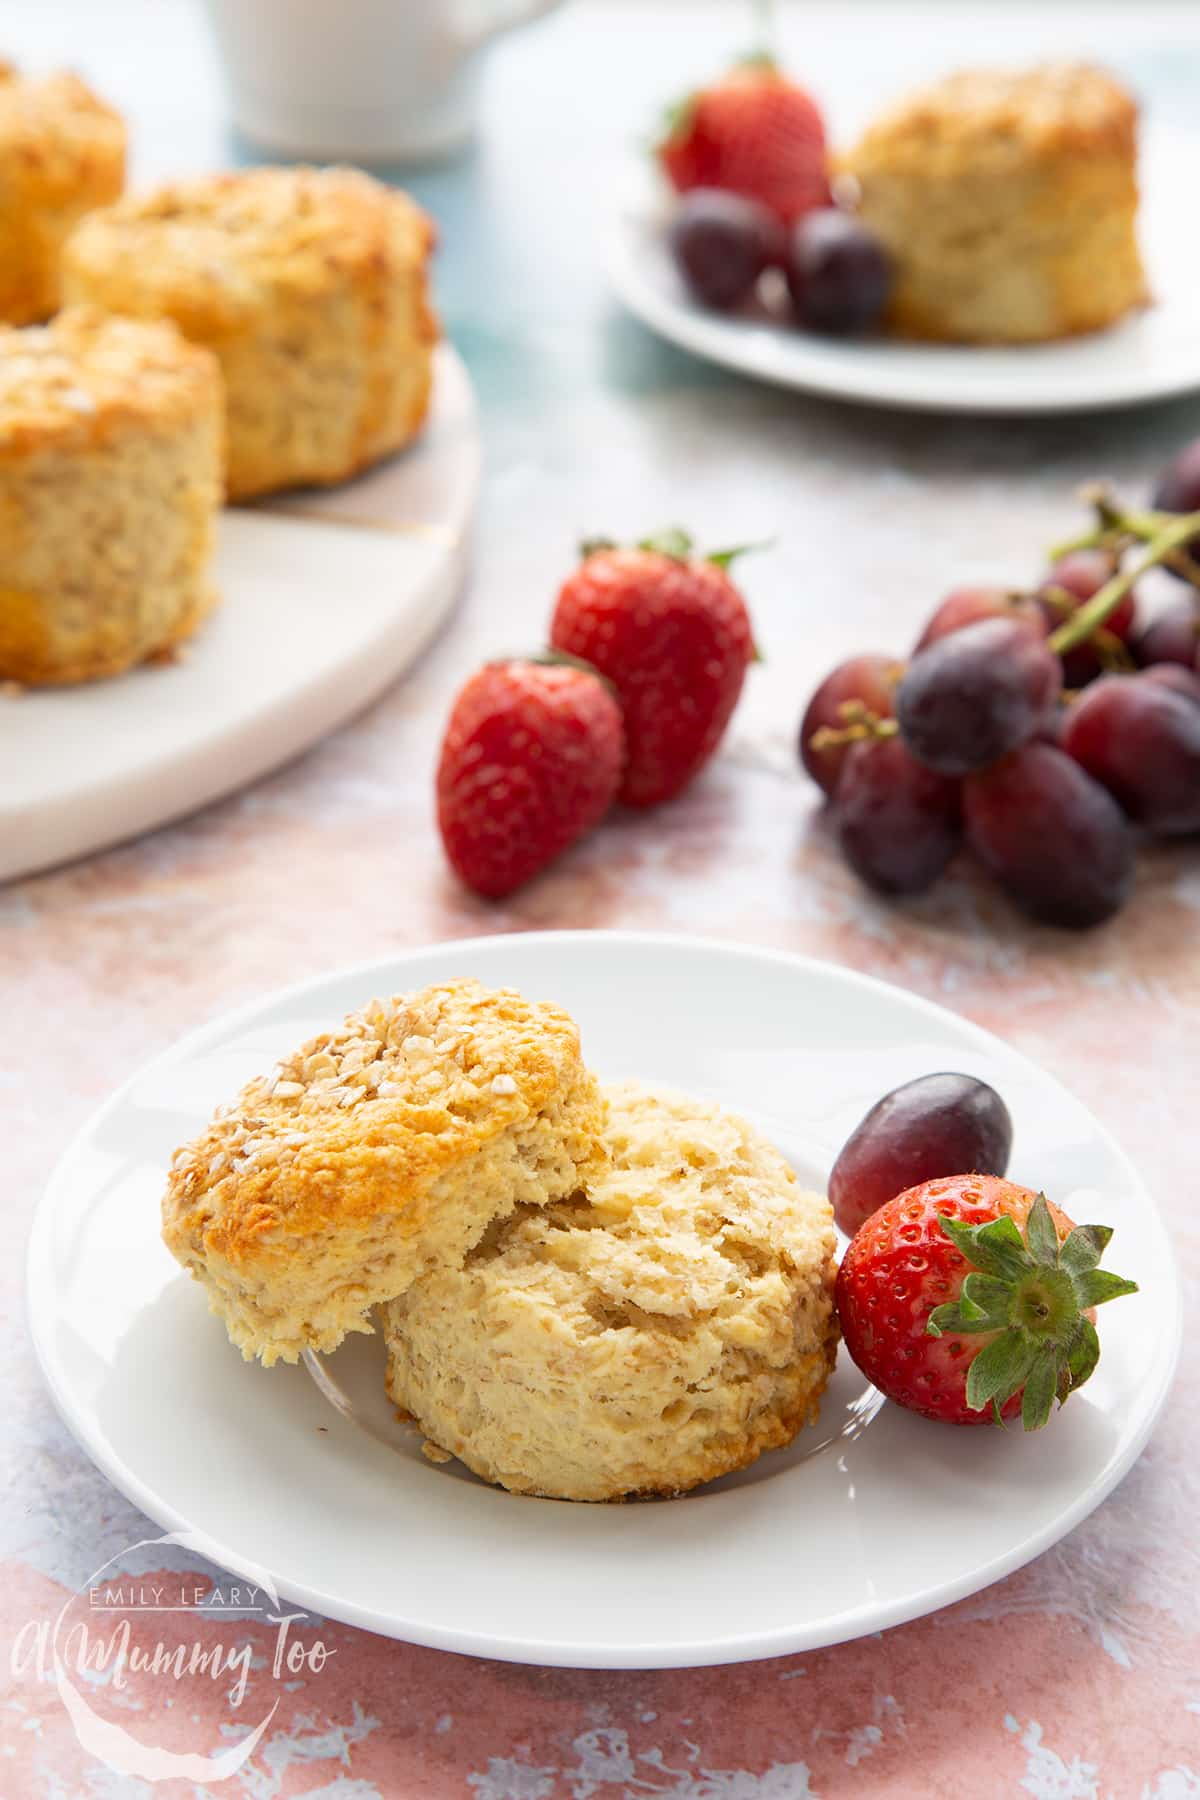 An oatmeal scone on a white plate with some fruit. The scone has been split. More oatmeal scones sit on a board in the background.